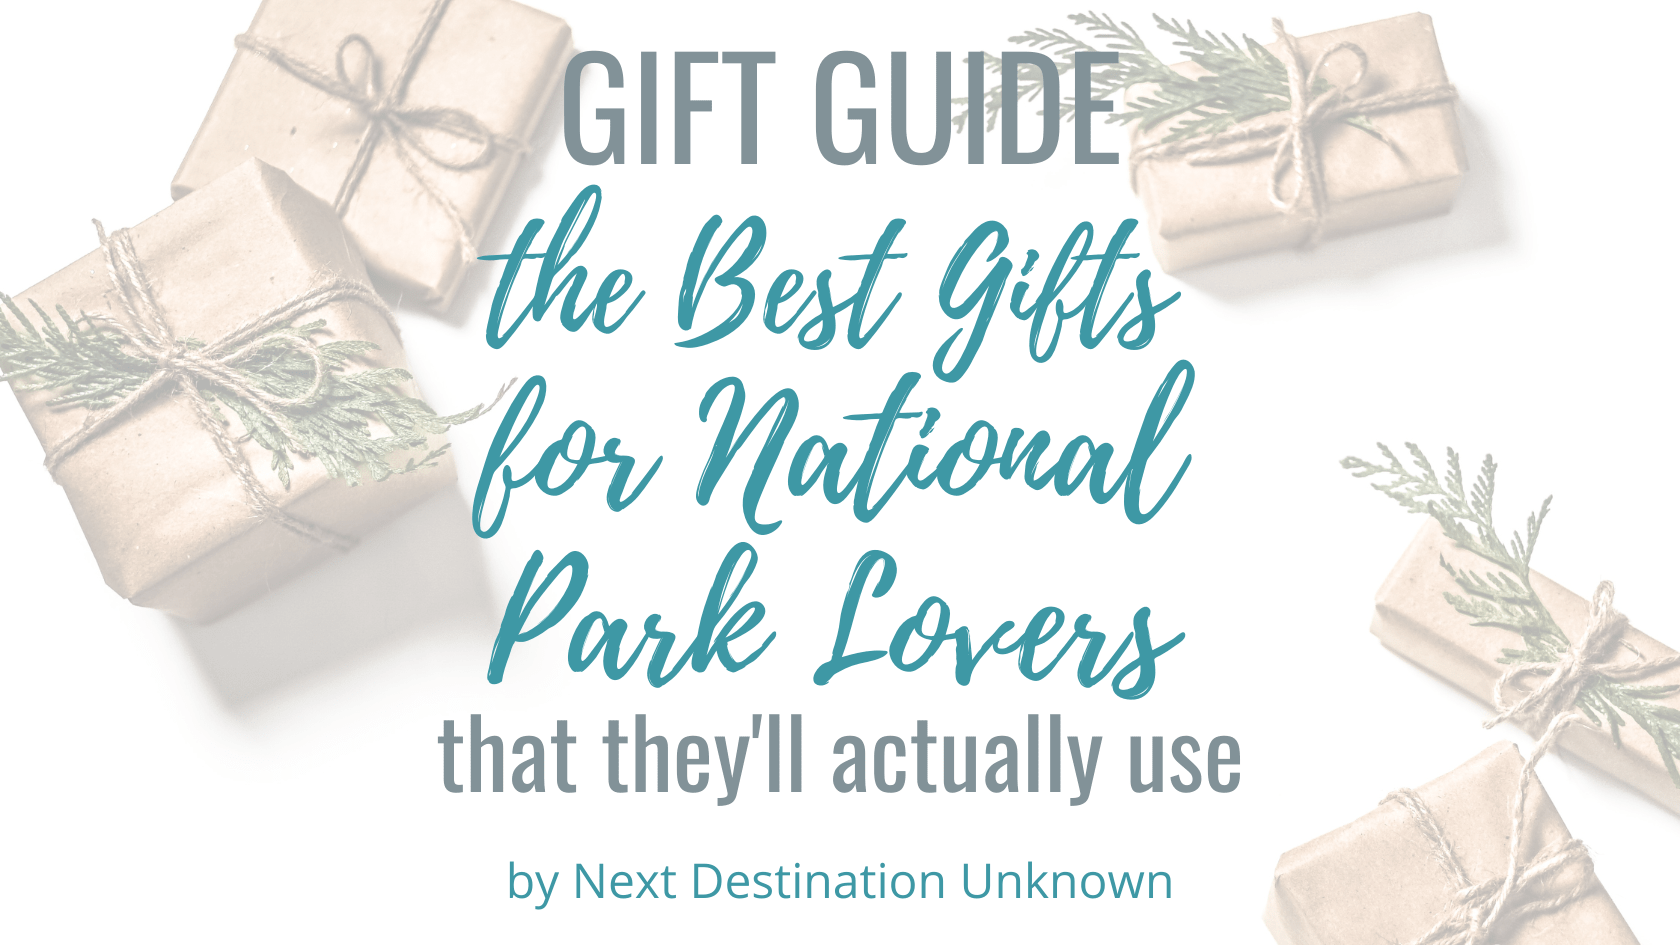 The Best Gifts for National Park Lovers That They'll Actually Use